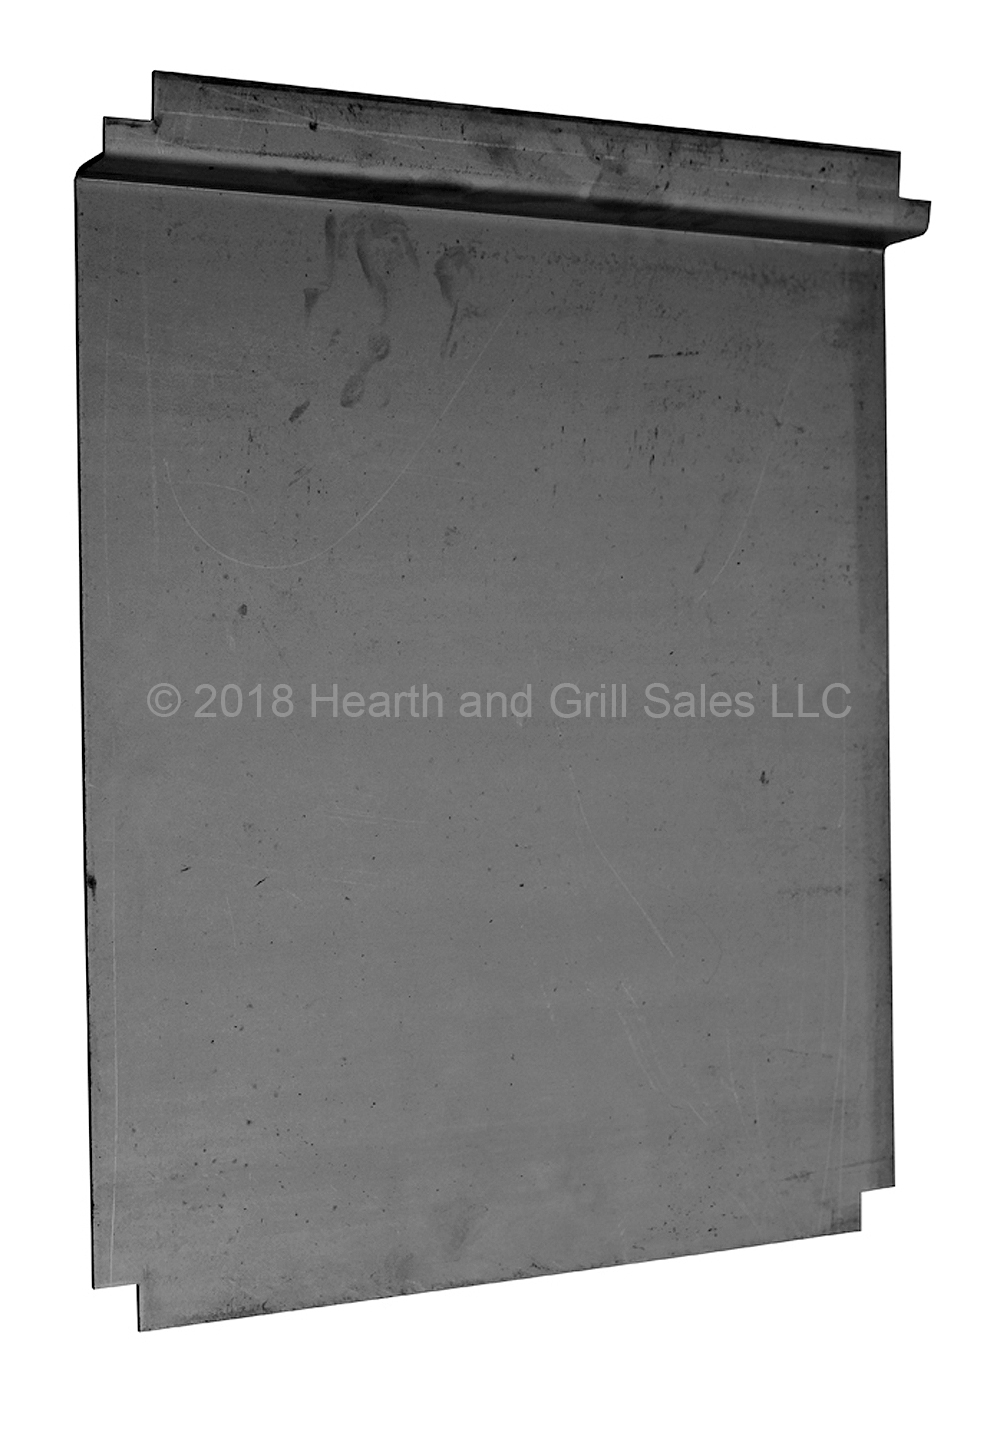 Jensen Wood Furnace Replacement Parts